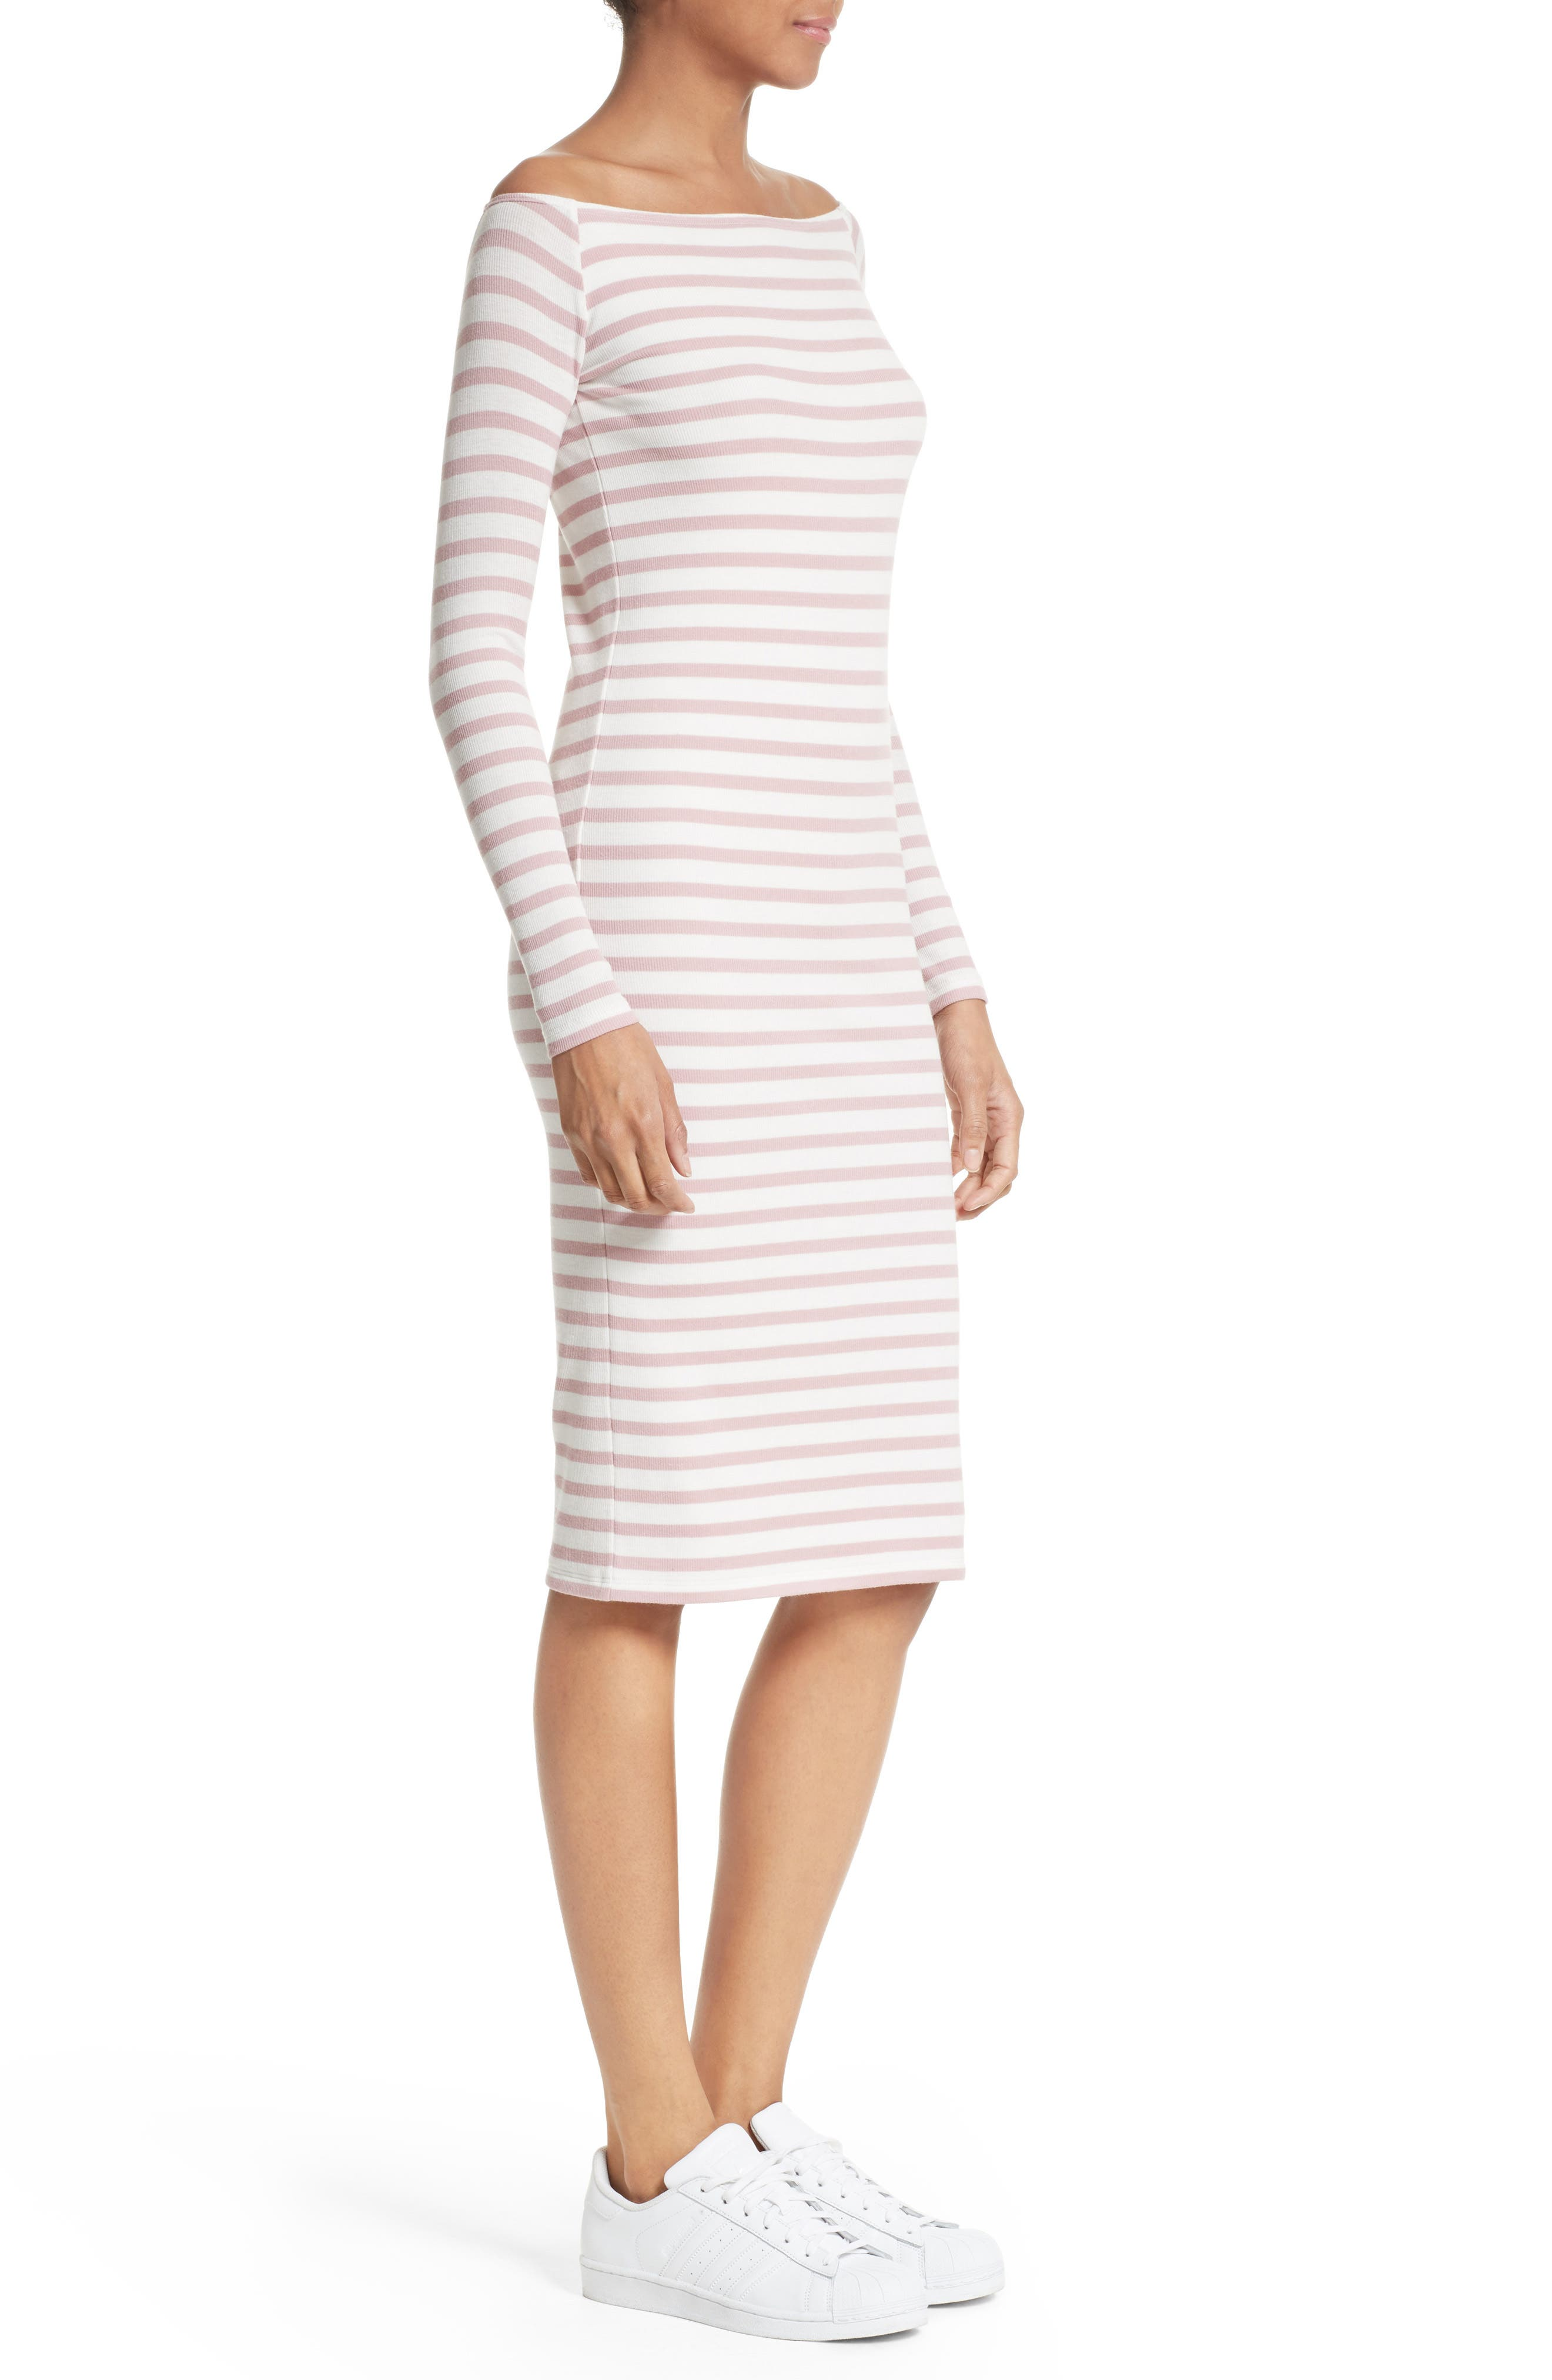 Off the Shoulder Rib Dress,                             Alternate thumbnail 4, color,                             Nutmeg/ Chalk Stripe